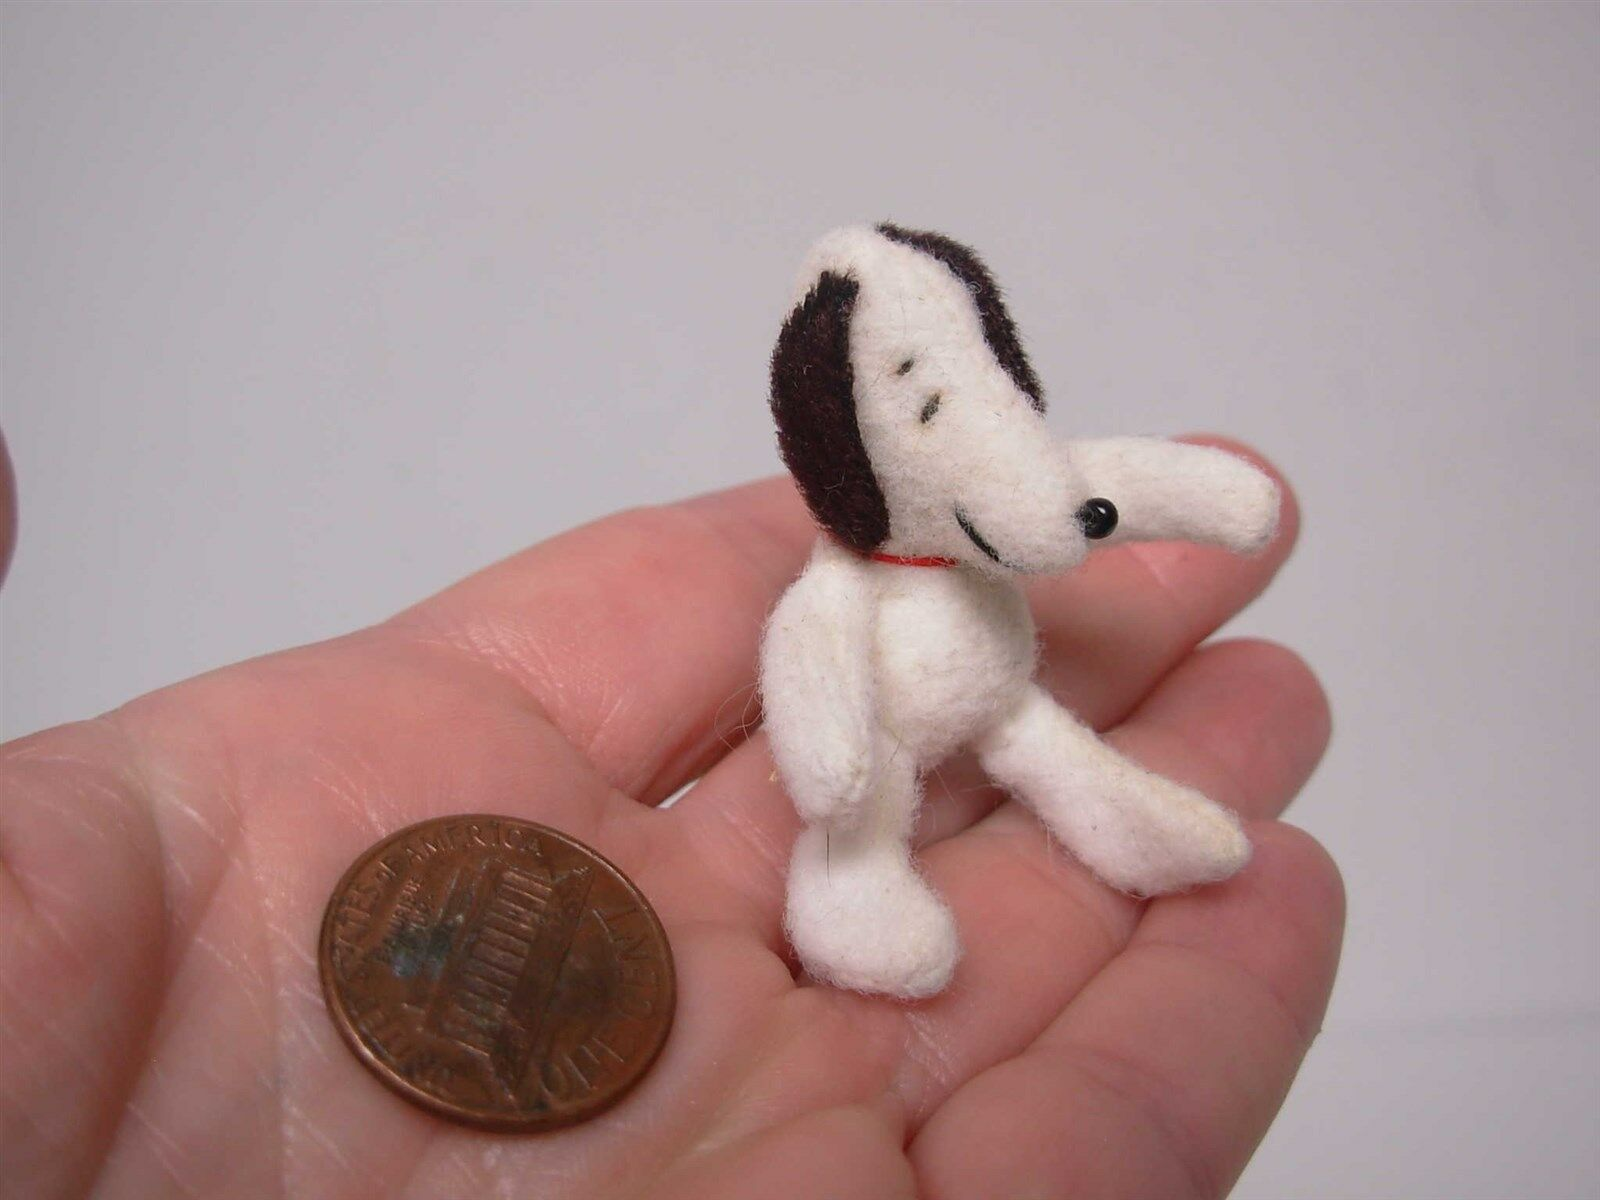 OOAK ARTISAN DOLLHOUSE MINIATURE HAND STITCHED Weiß SITTING SNOOPY DOG